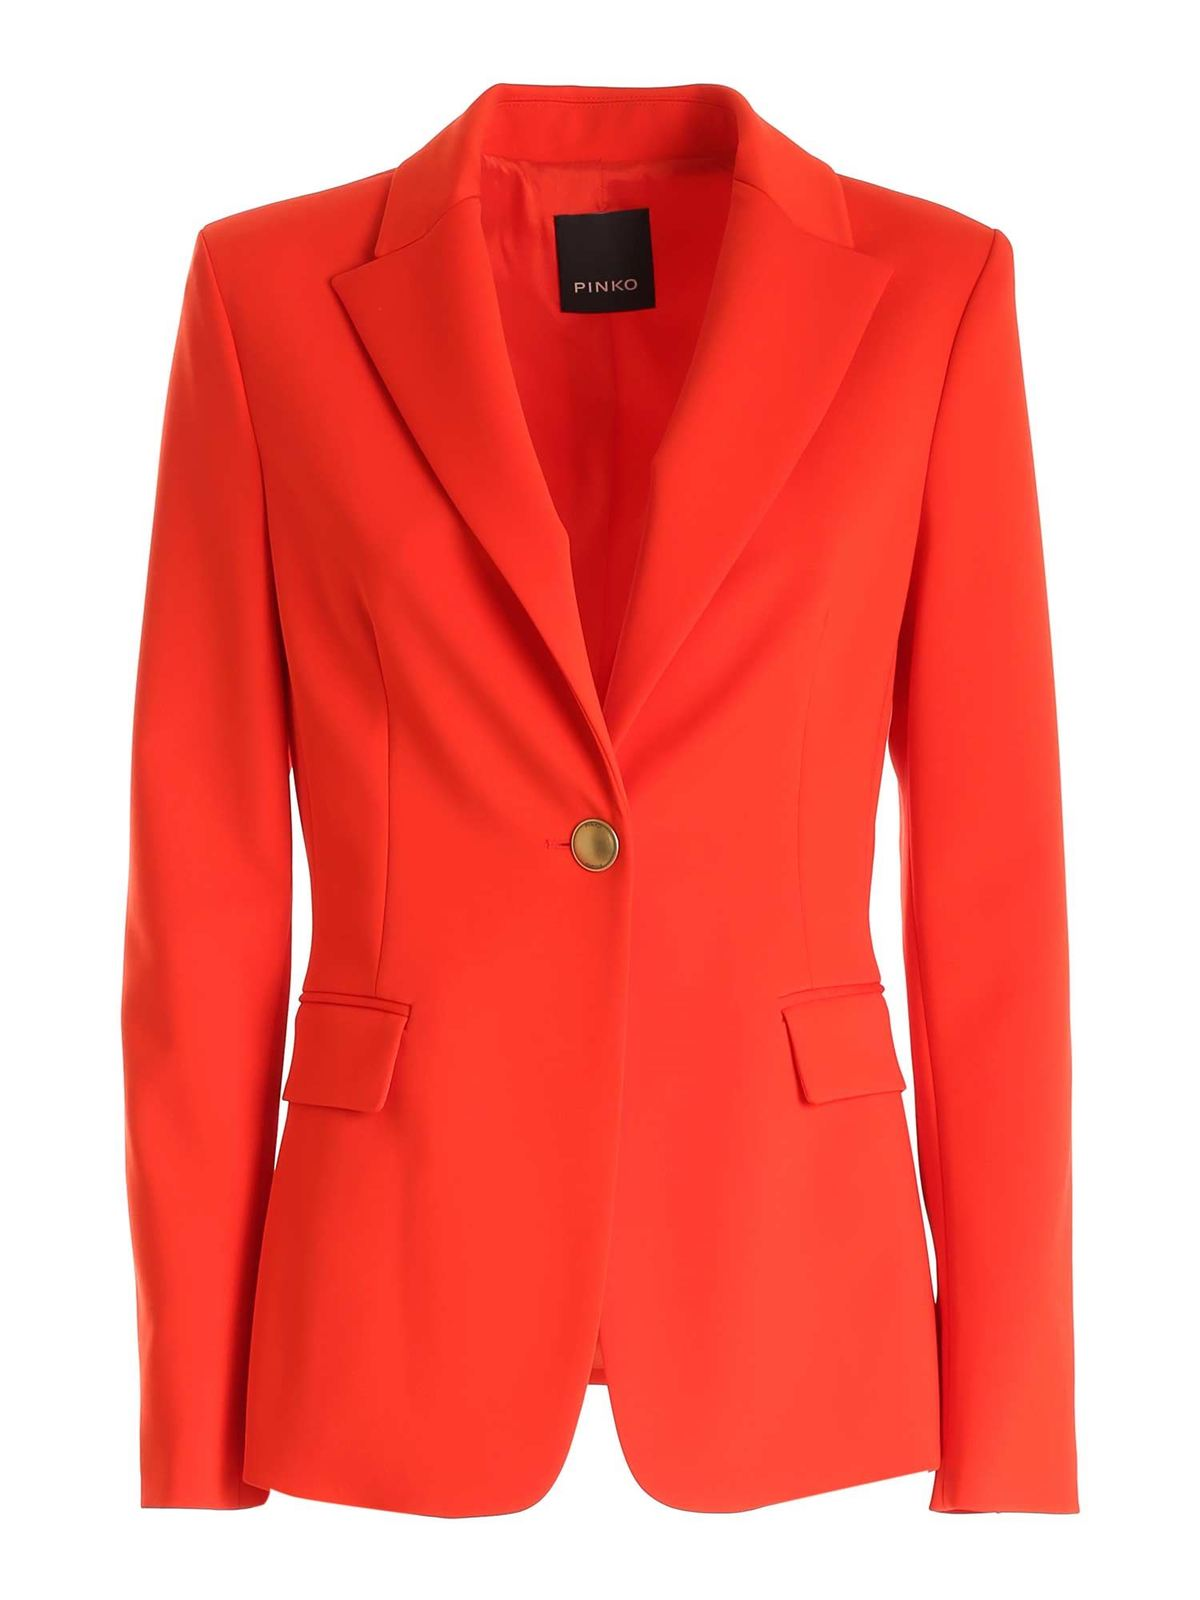 Pinko Linings SIGMA 2 JACKET IN RED